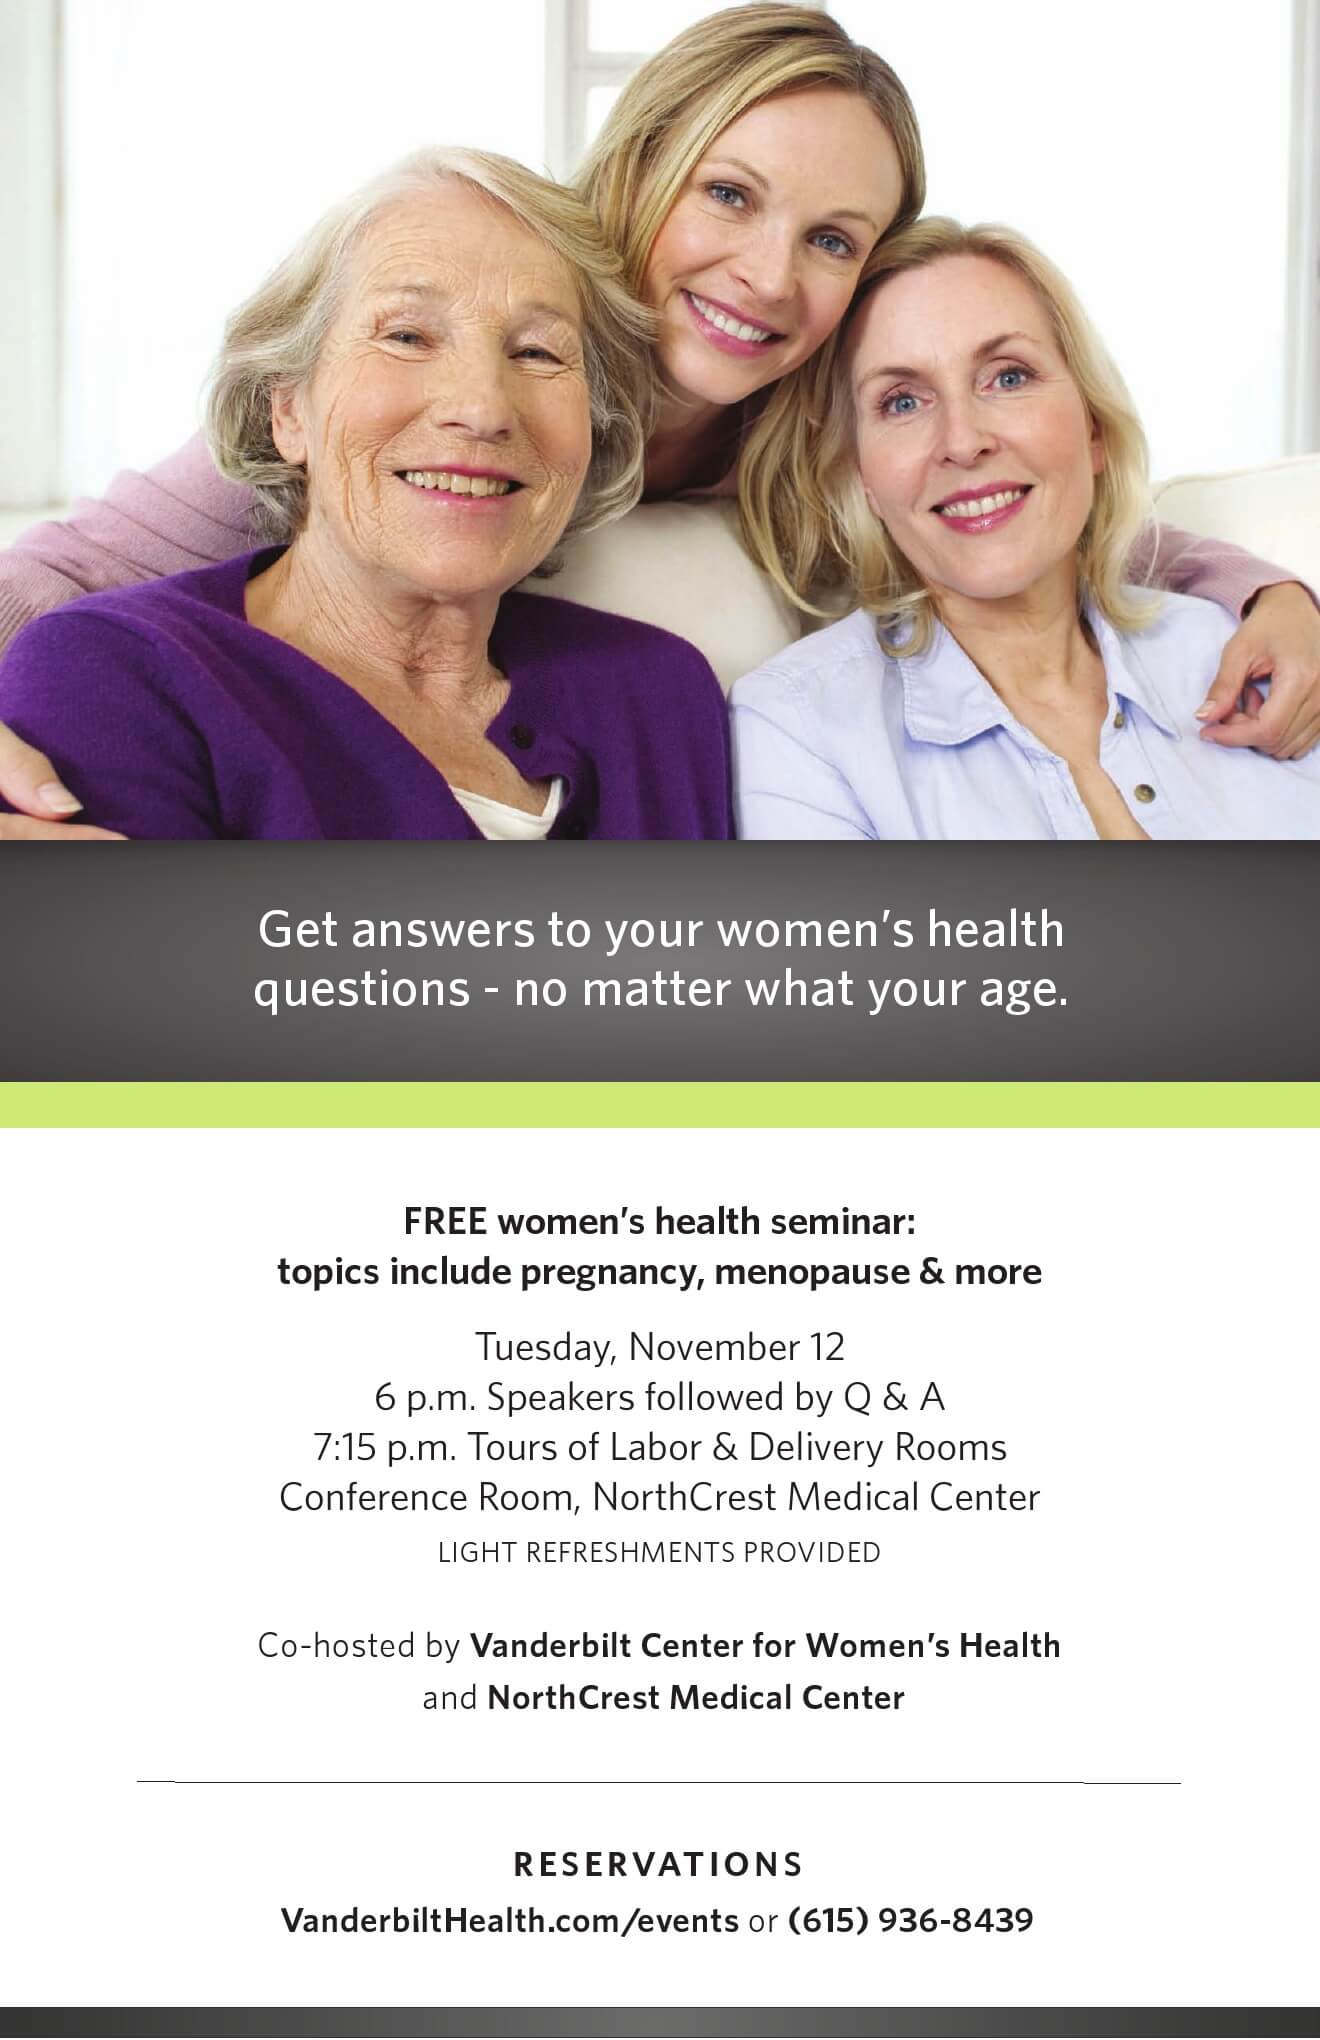 FREE Womens Health Seminar Pregnancy Menopause More – Seminar Flyer